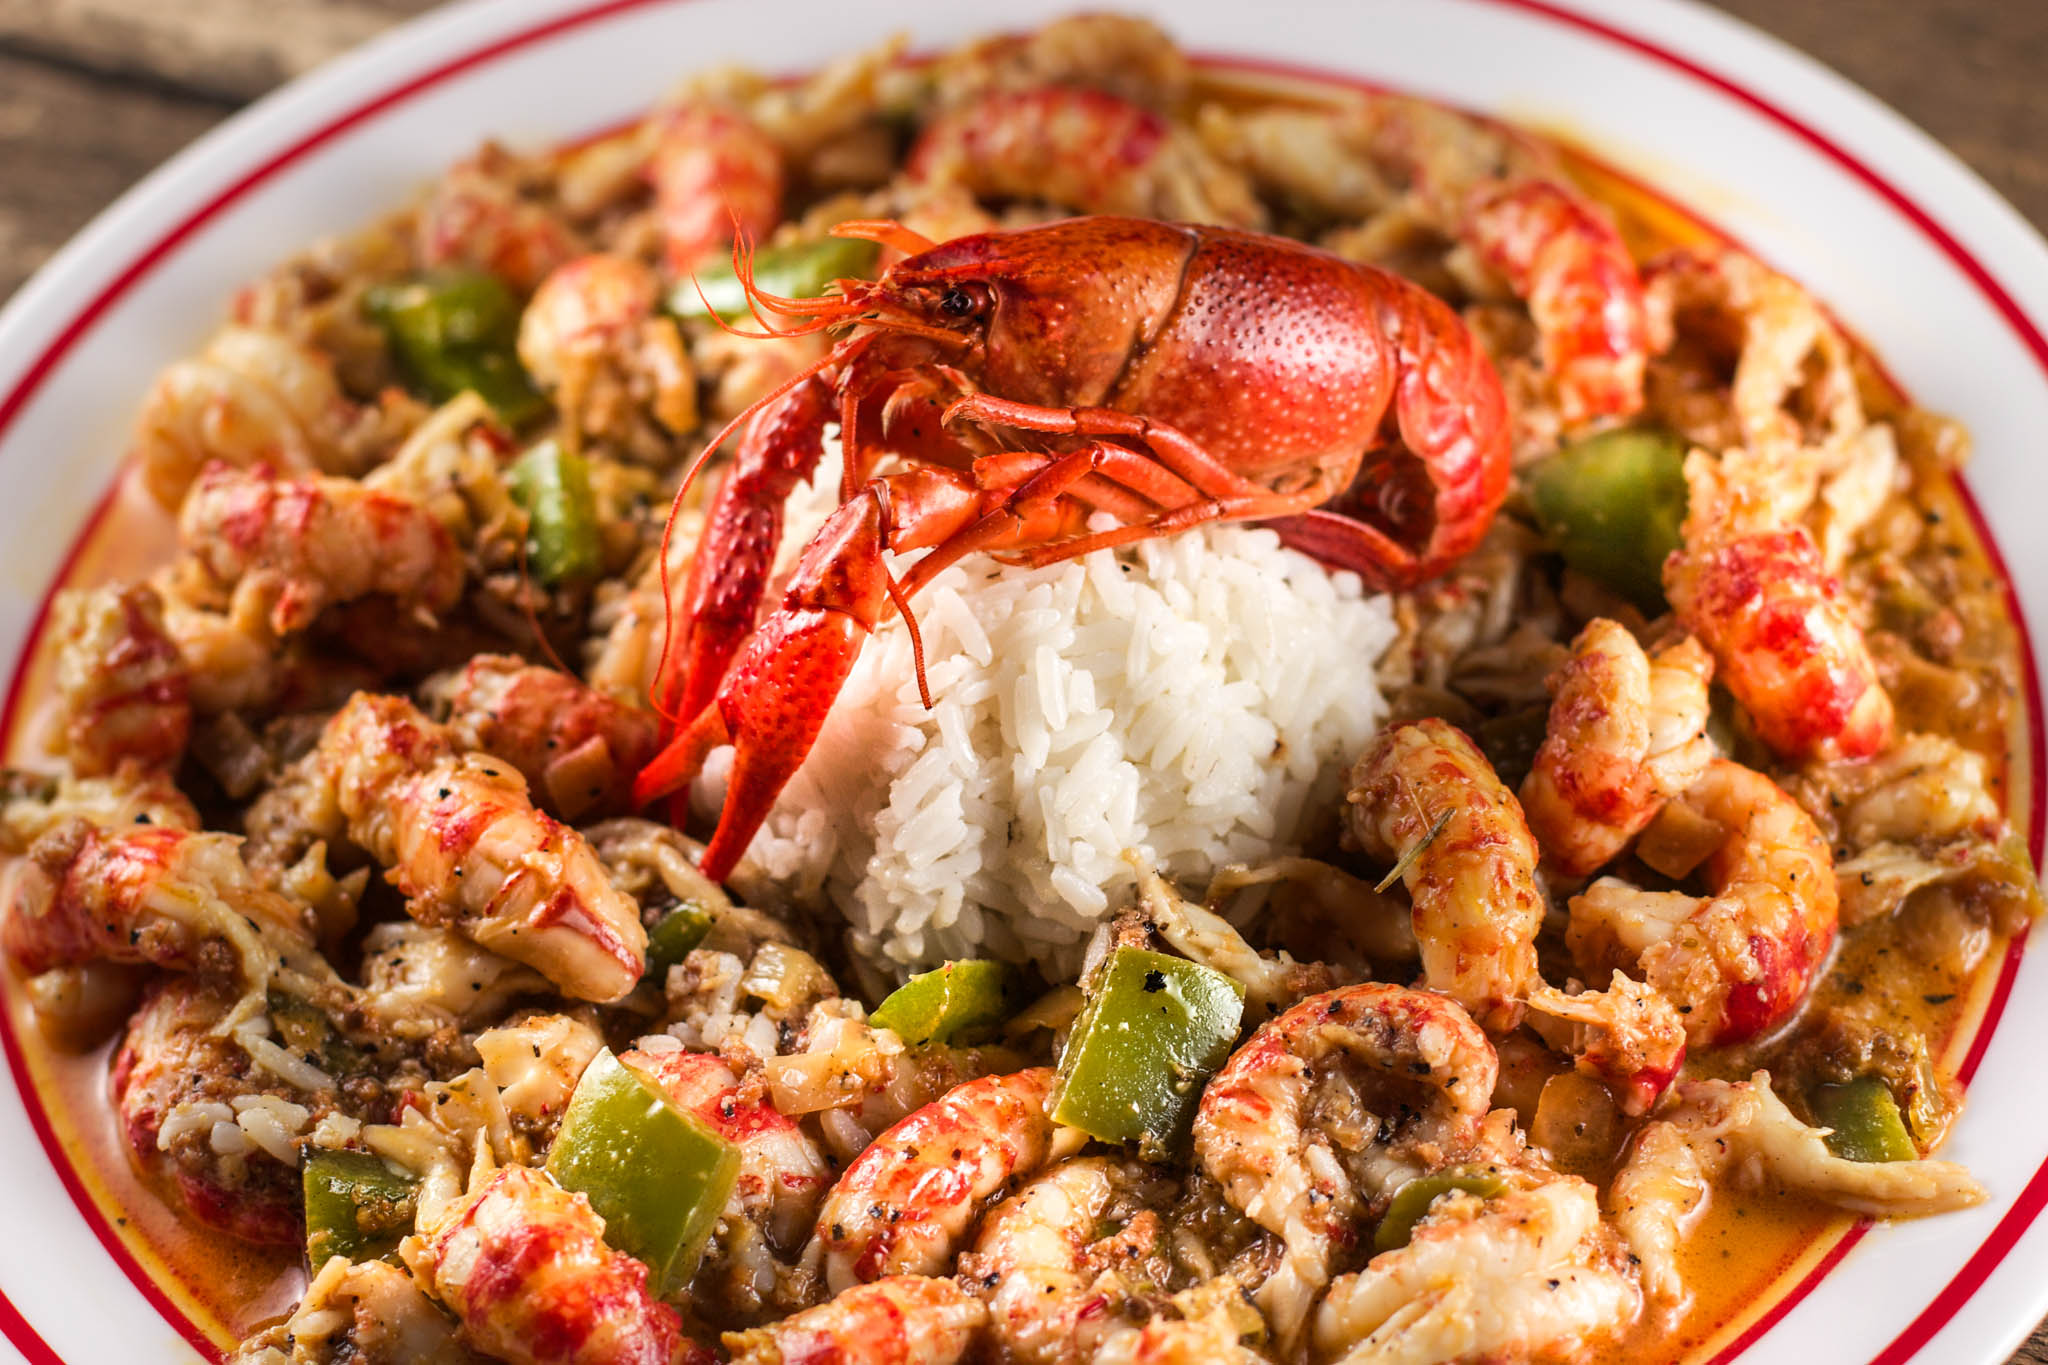 partially-cooked crawfish tailsa